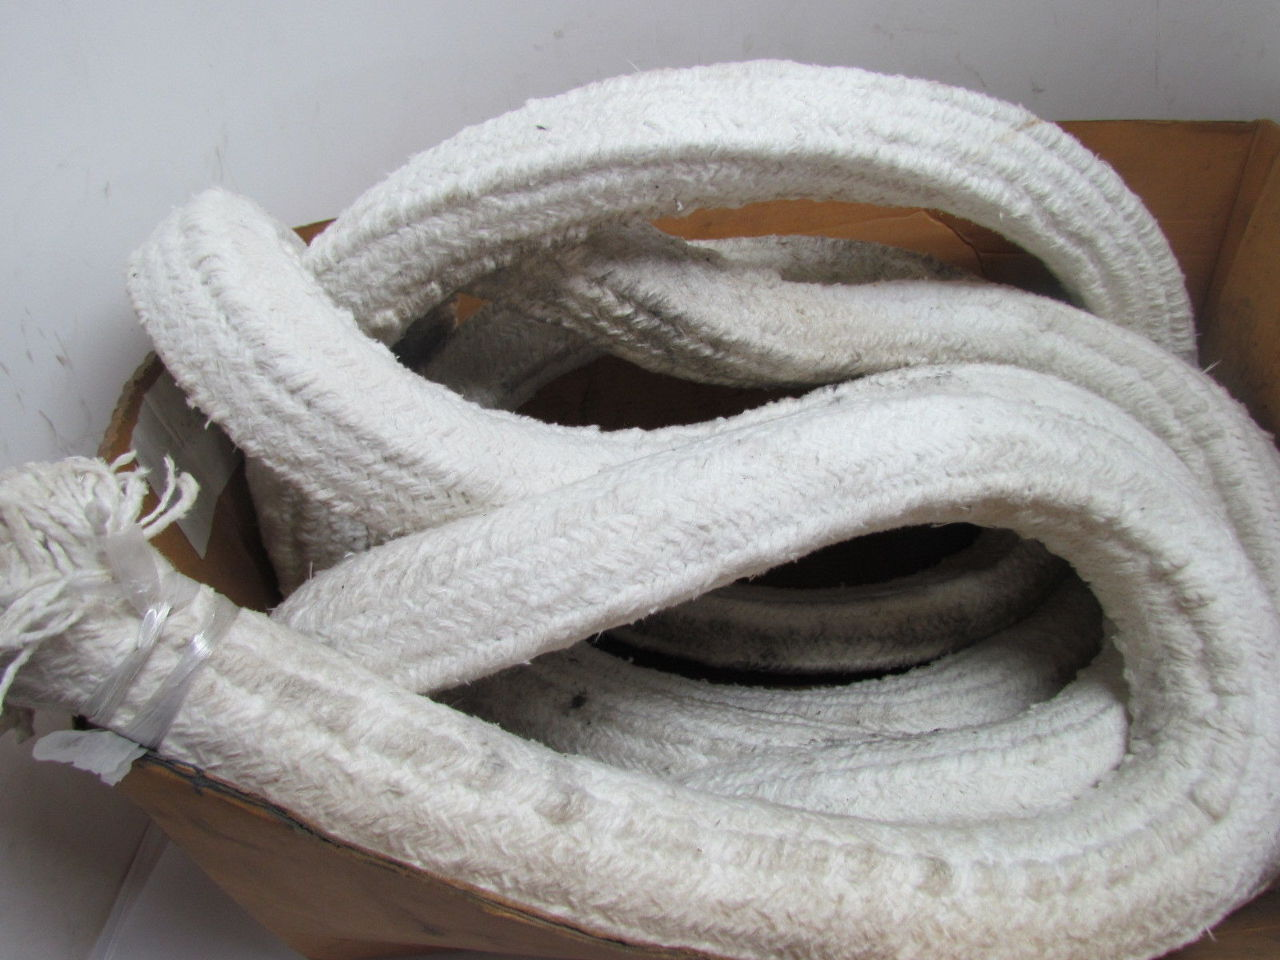 36027-high-temp-heat-resistant-square-braided-fiber-rope-dry-packing-2-sq-25-feet